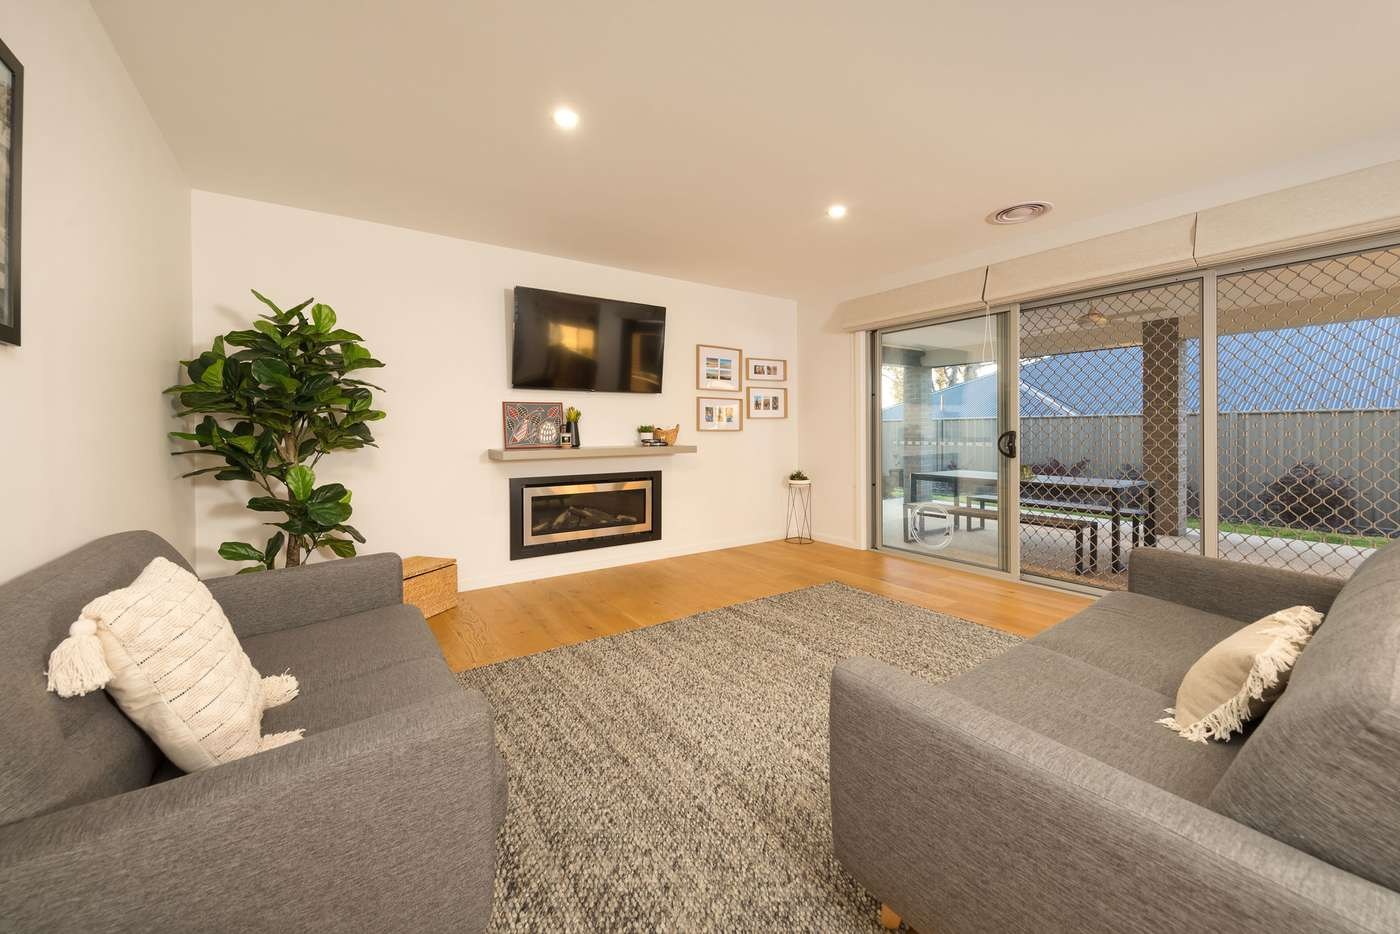 Fifth view of Homely house listing, 12 Partridge Way, Wodonga VIC 3690